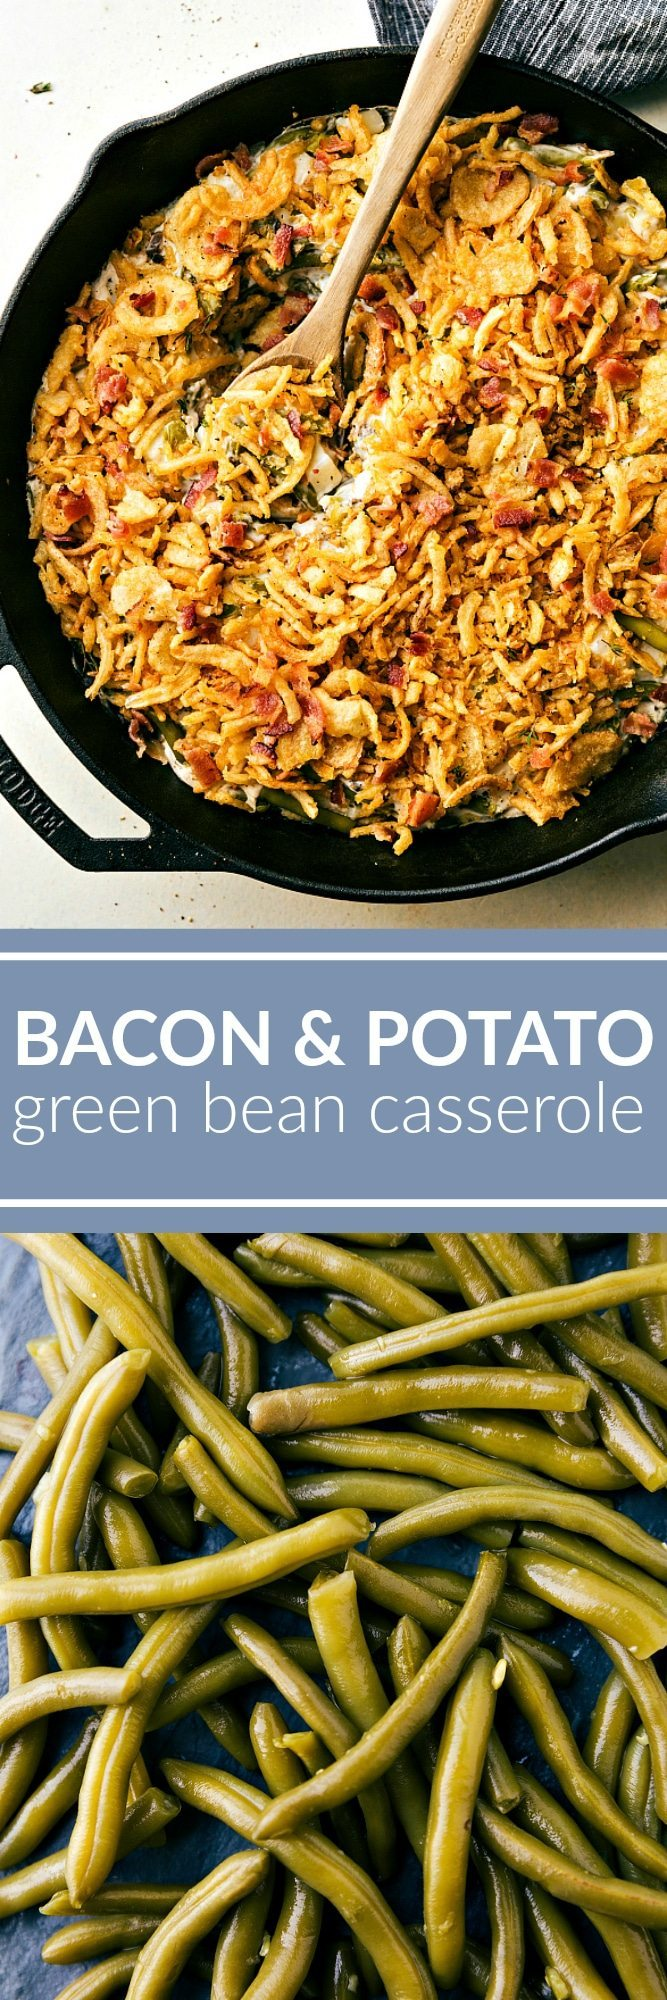 The classic green bean casserole with a fun southern twist -- adding potatoes and bacon! This super simple green bean casserole can be prepared in fifteen minutes! via chelseasmessyapron.com